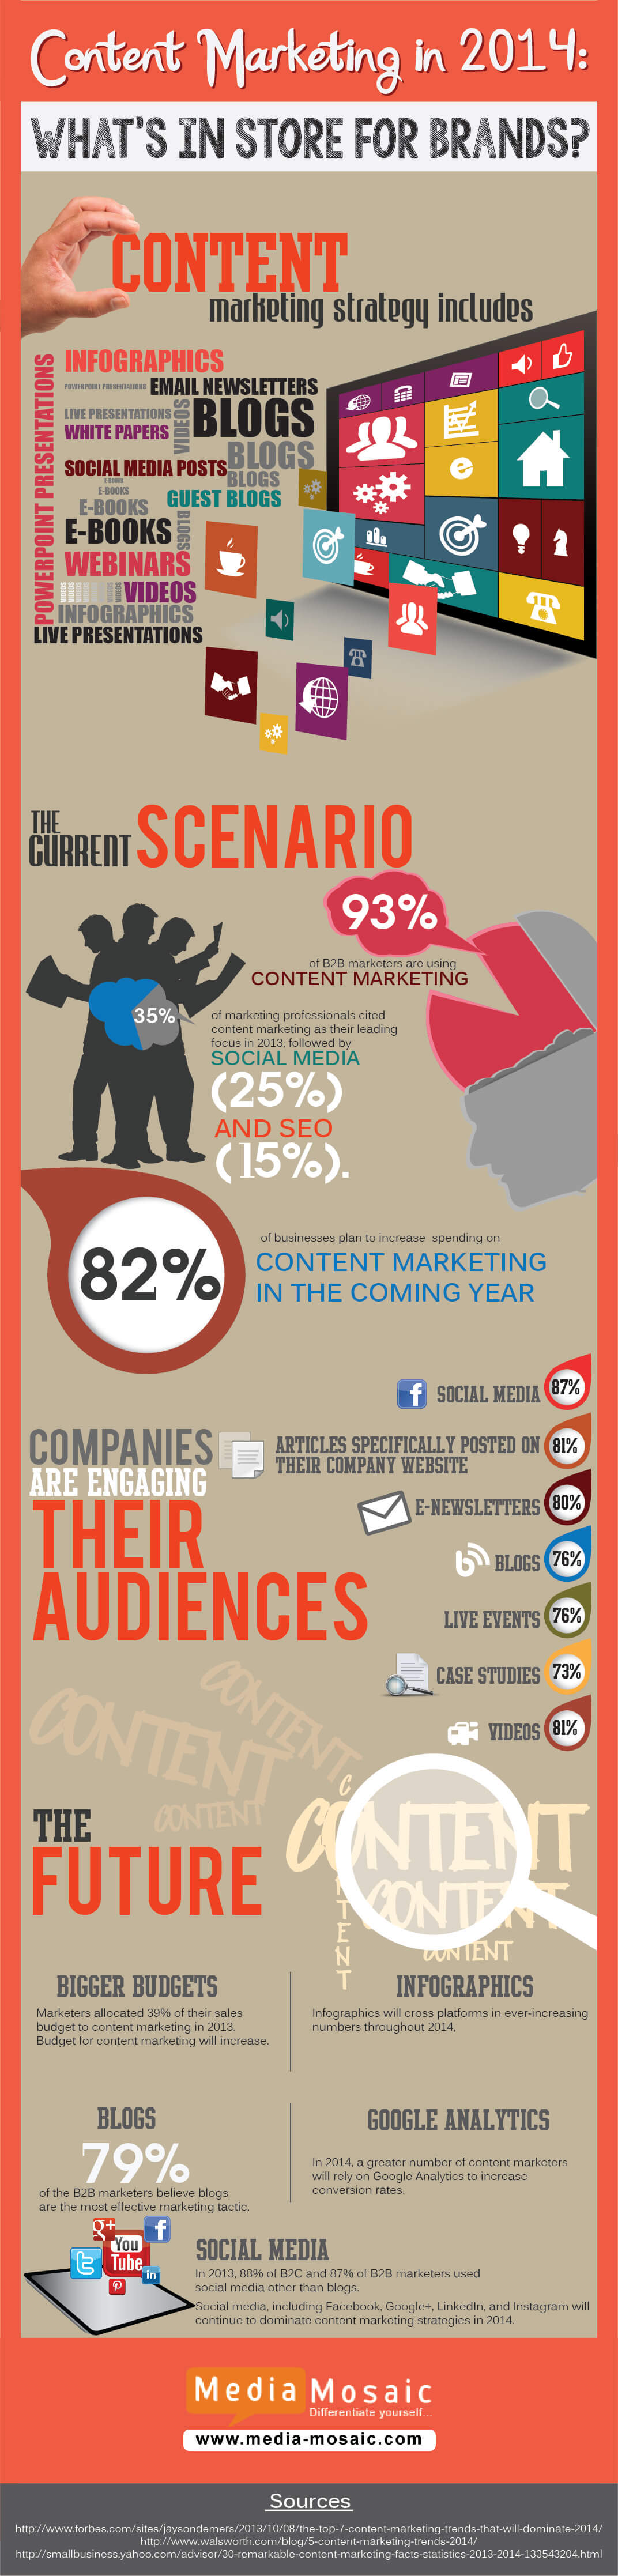 content-marketing-2014-infographic